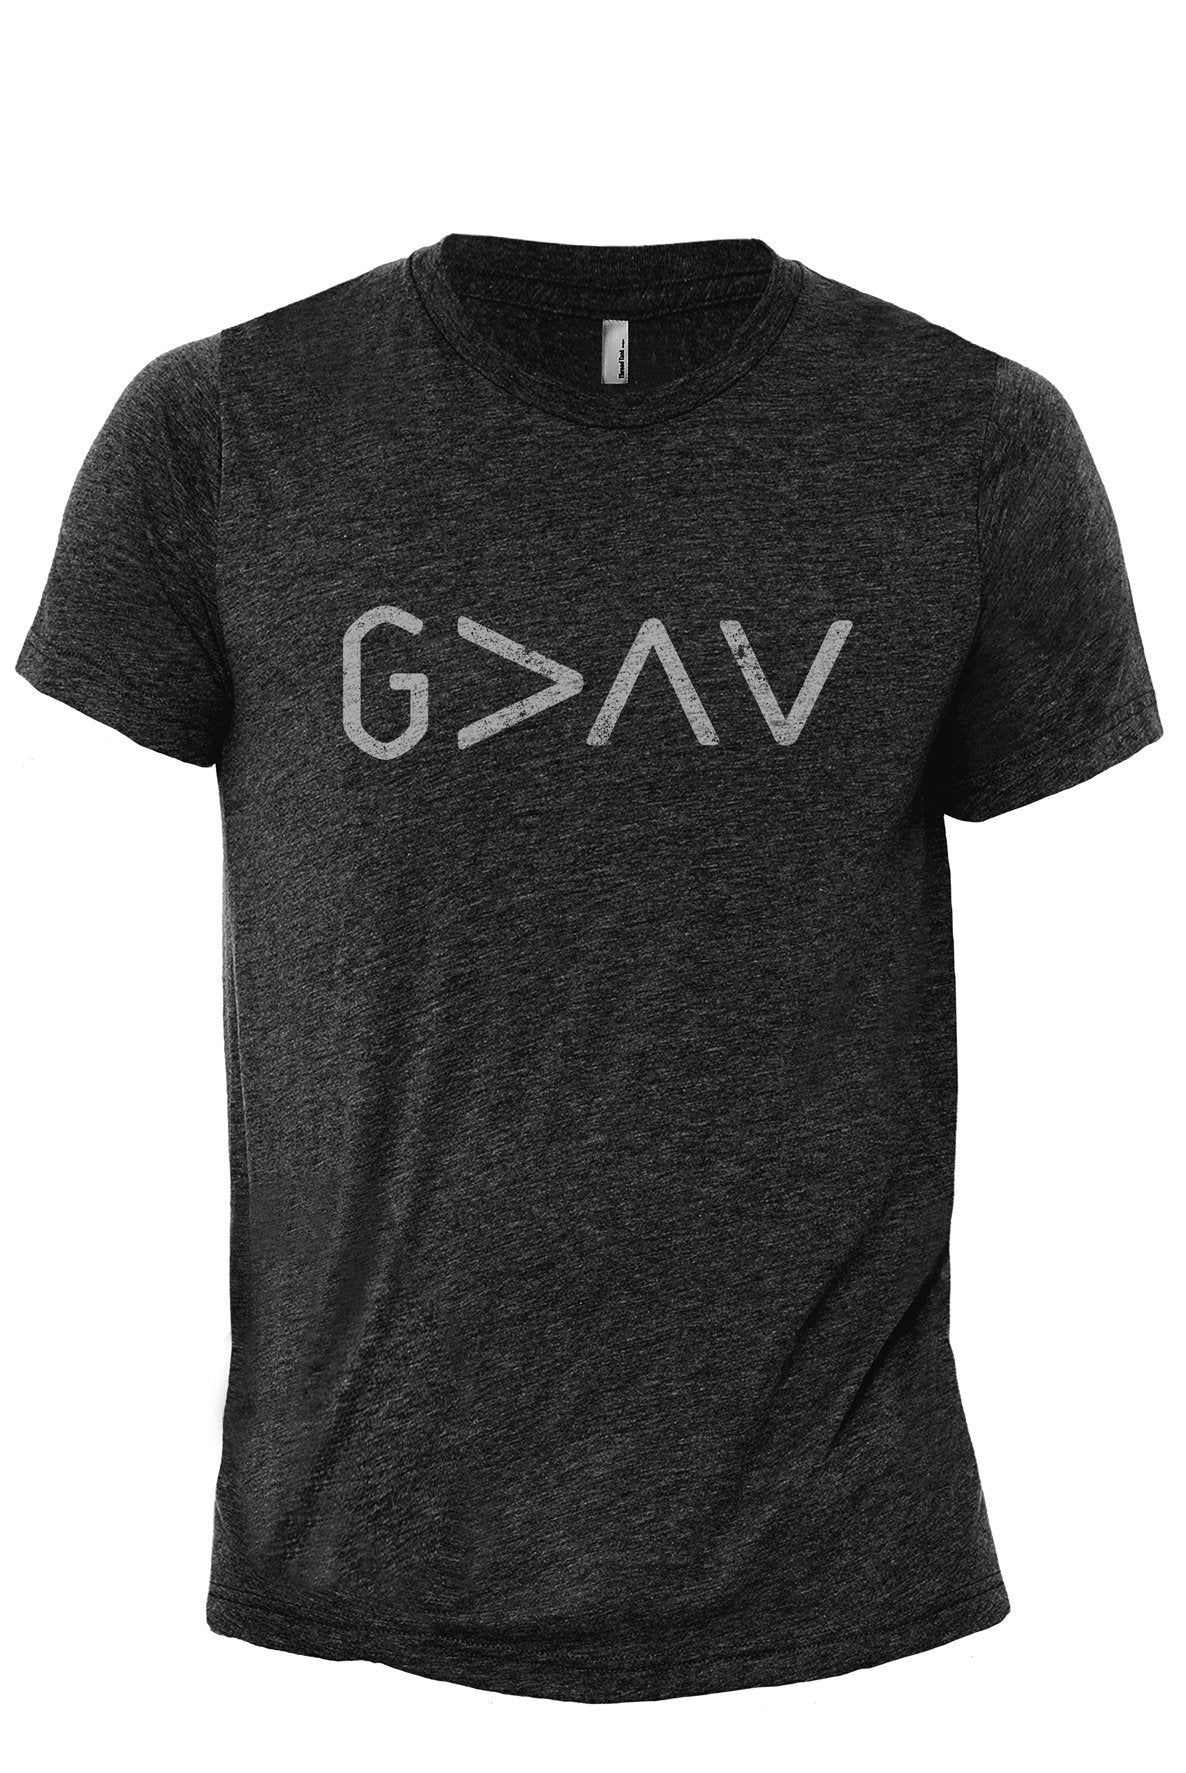 God Is Greater Than The Highs And Lows Charcoal Printed Graphic Men's Crew T-Shirt Tee